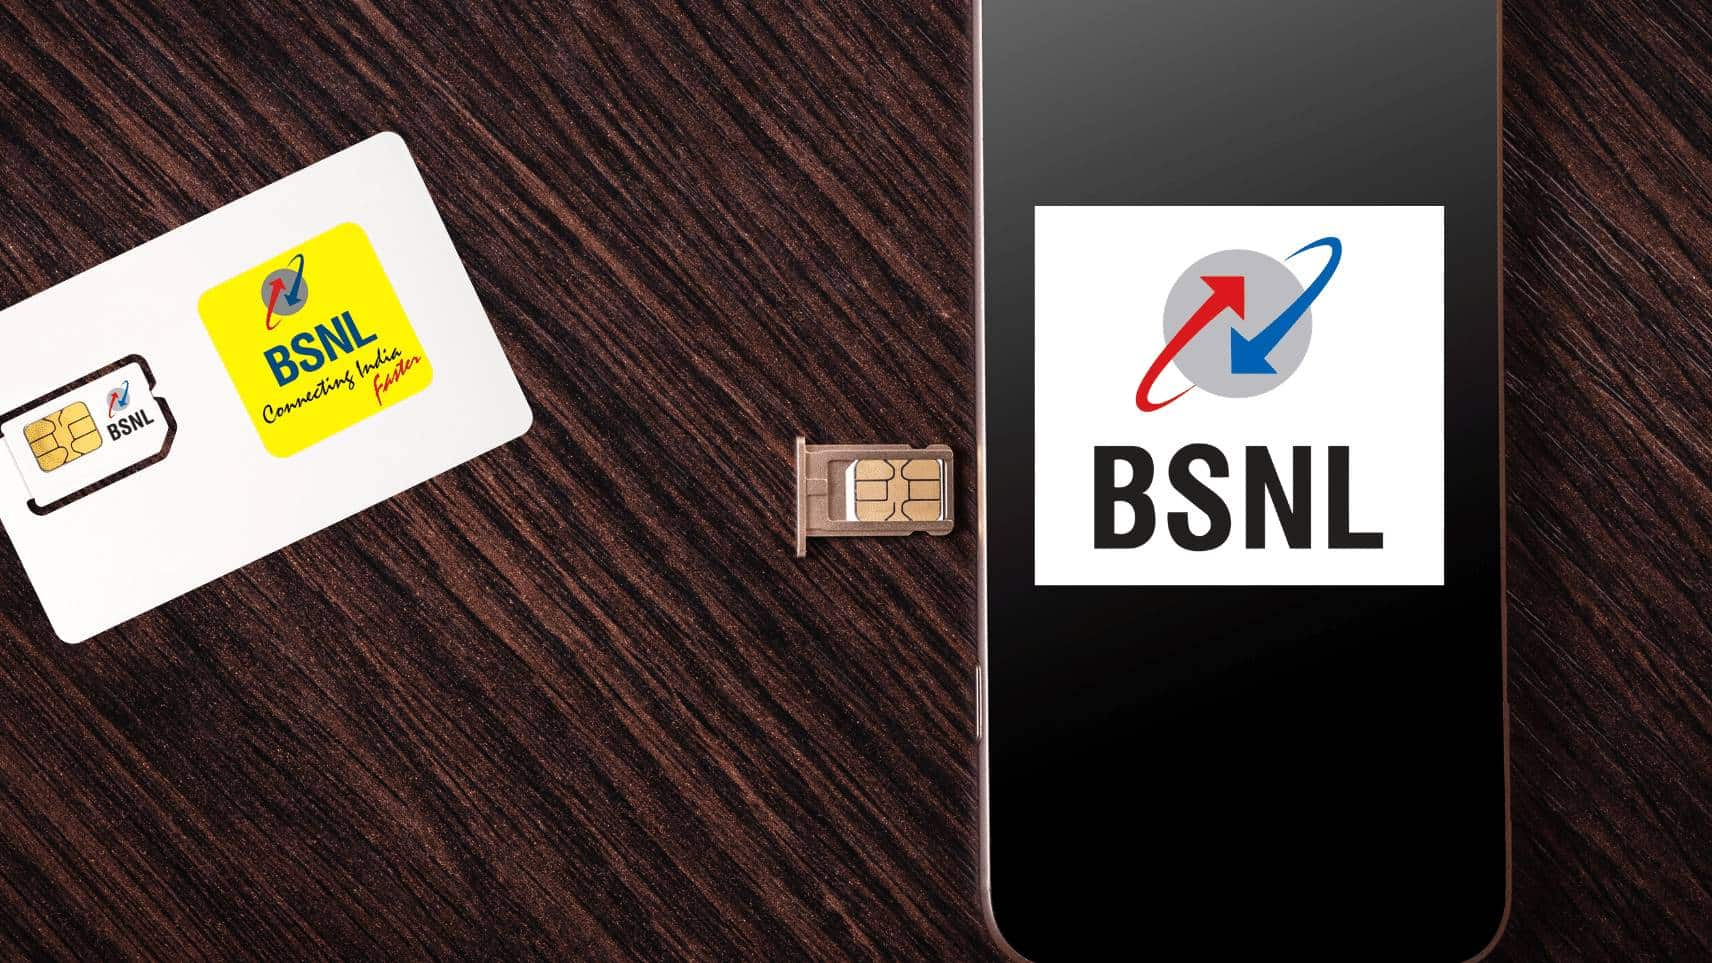 Tele Verification Number 1507 Not Working For BSNL? - [Solved]